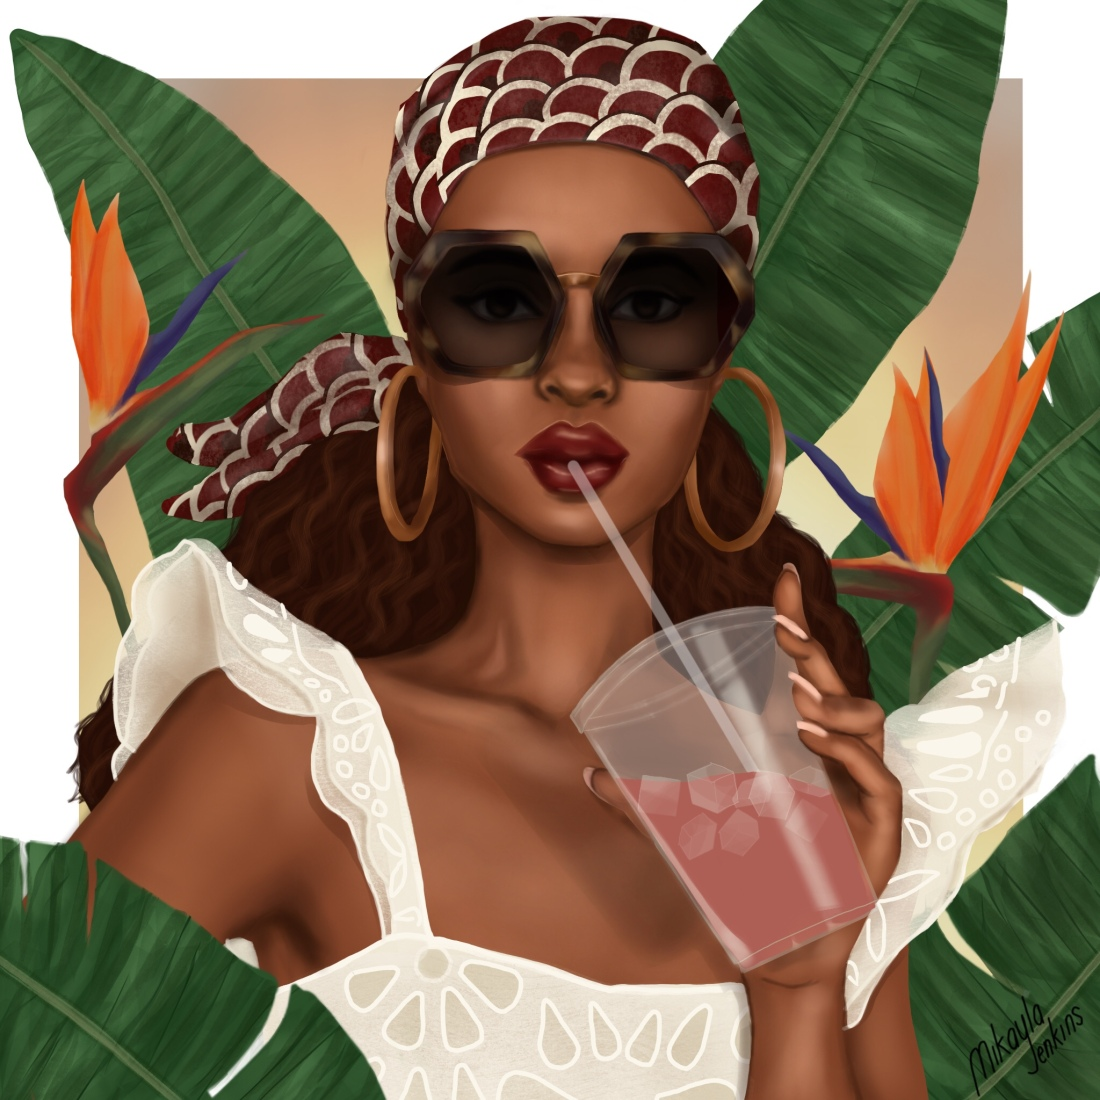 Luxe in Paradise - Sublime Cravings Illustration